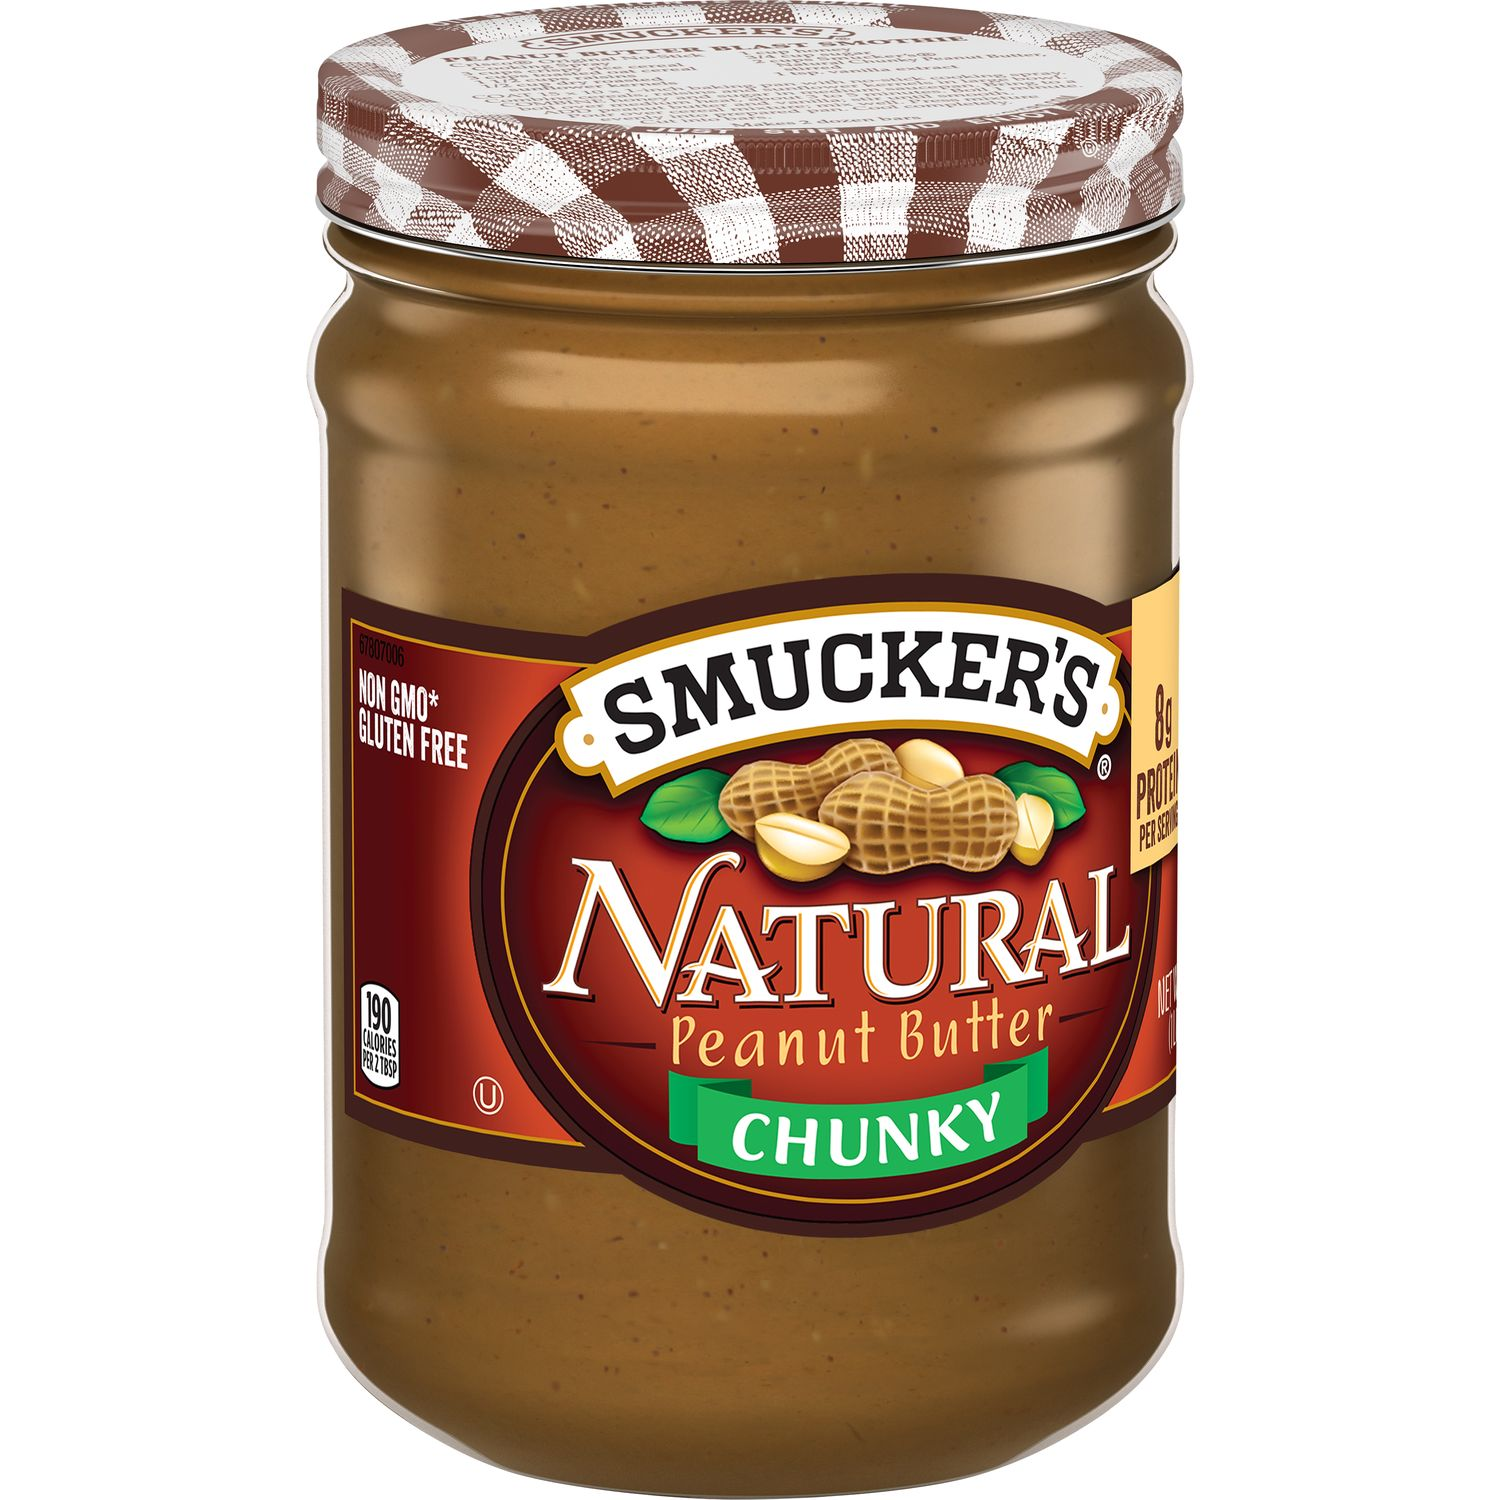 Smucker's Chunky Natural Peanut Butter, 16-Ounce